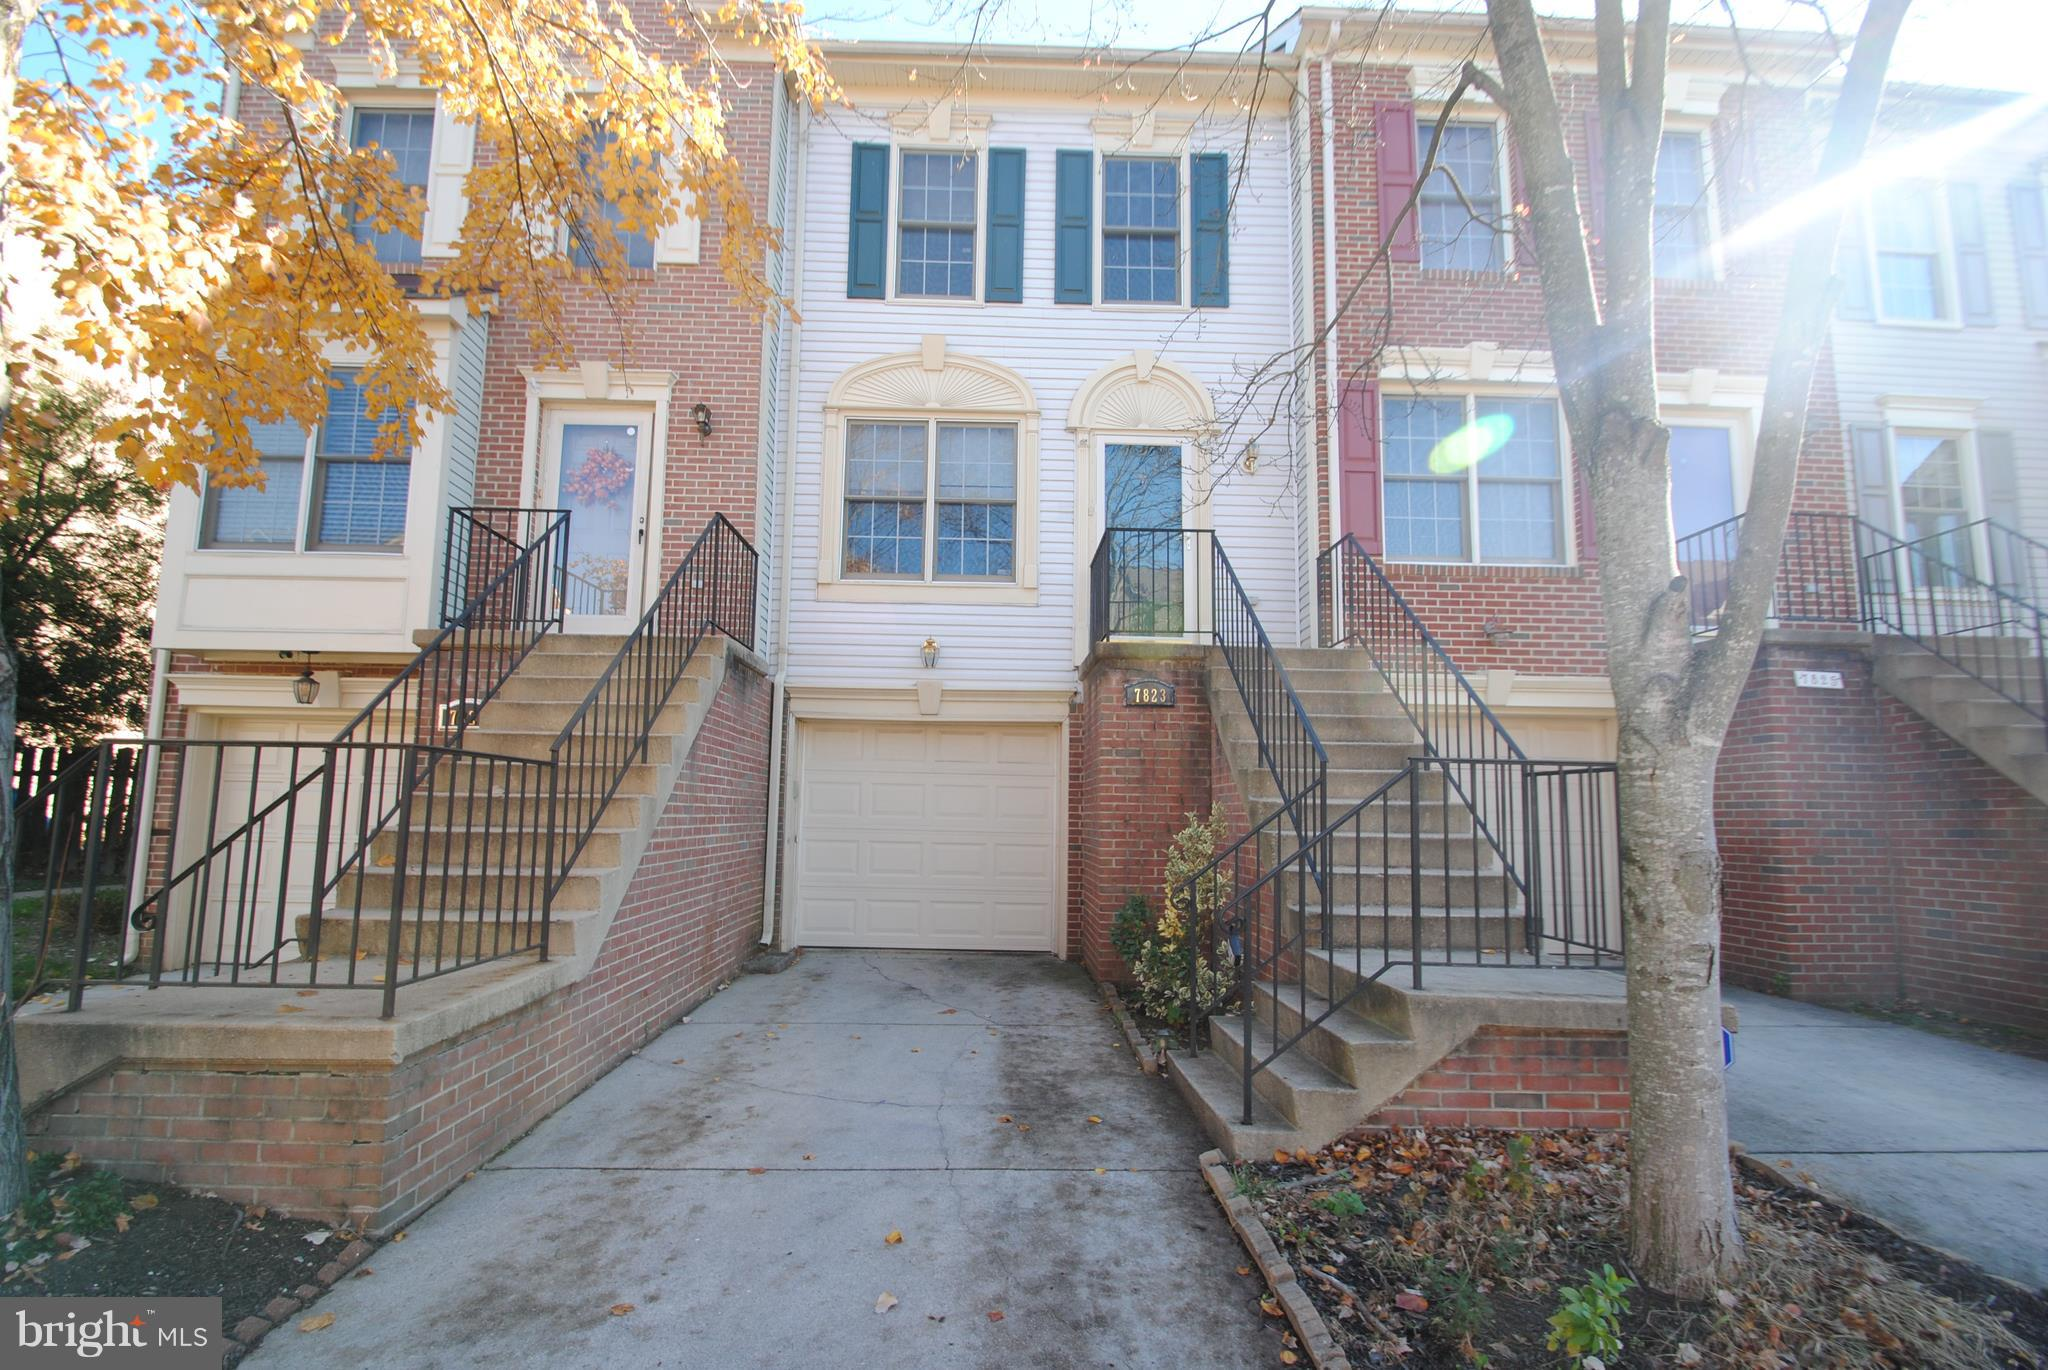 3 bedroom 2 full and 2 half bath townhome.  One car attached garage.  Hardwood Floors.   Eat in Ktichen with Granite and Custom Backsplash.  SS appliances.  Deck off kitchen.  Fully finished basement with full daylight and walk out to fenced backyard.   Basement rec room with fireplace.  Reduced rent for 24 or 36 month lease.